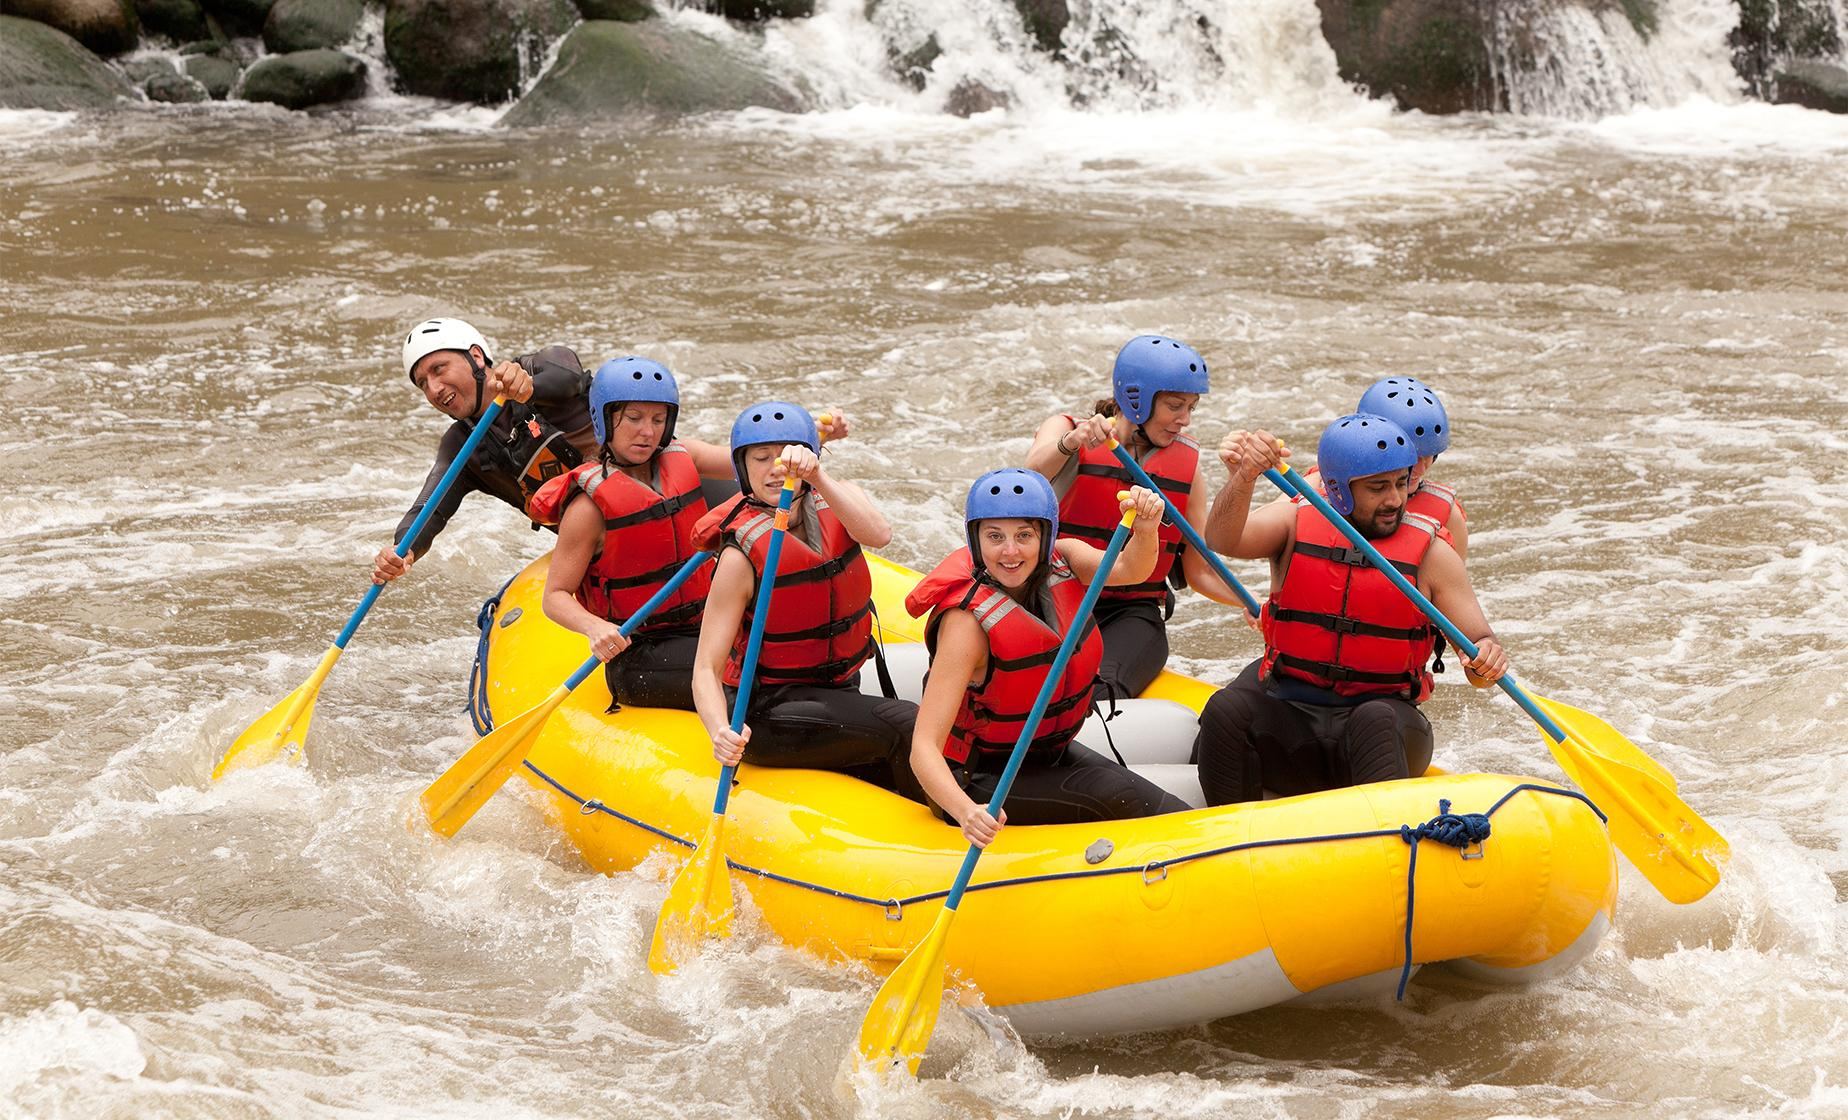 McKinley Run Rafting Experience in Denali, Alaska (Nenana River)